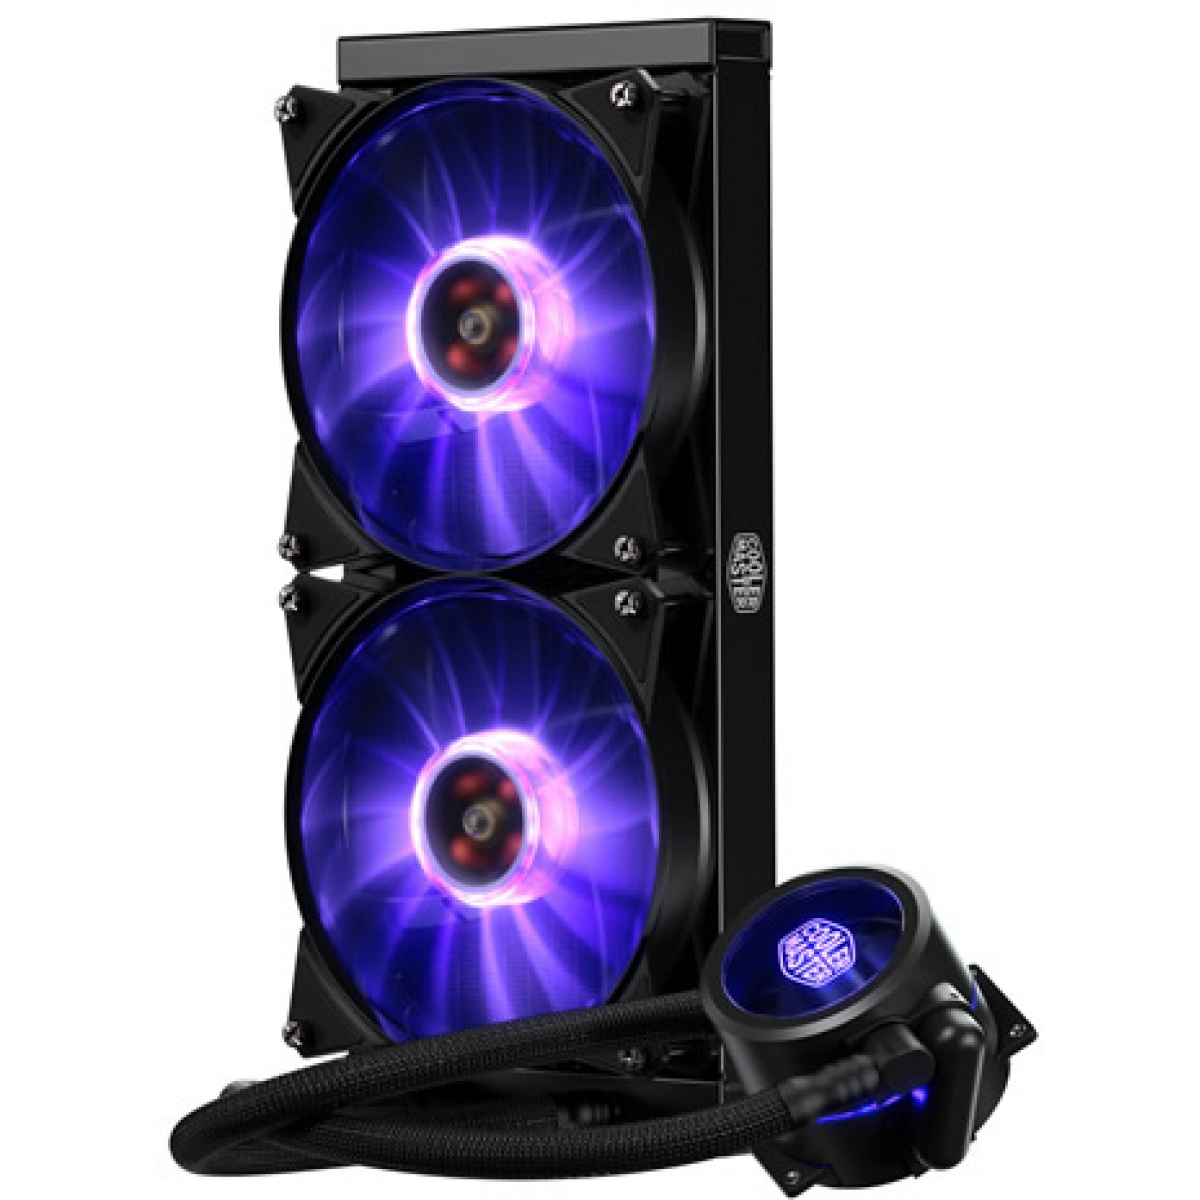 Water Cooler Cooler Master MasterLiquid Pro, RGB 280mm, Intel-AMD, MLY-D28M-A22PC-R1